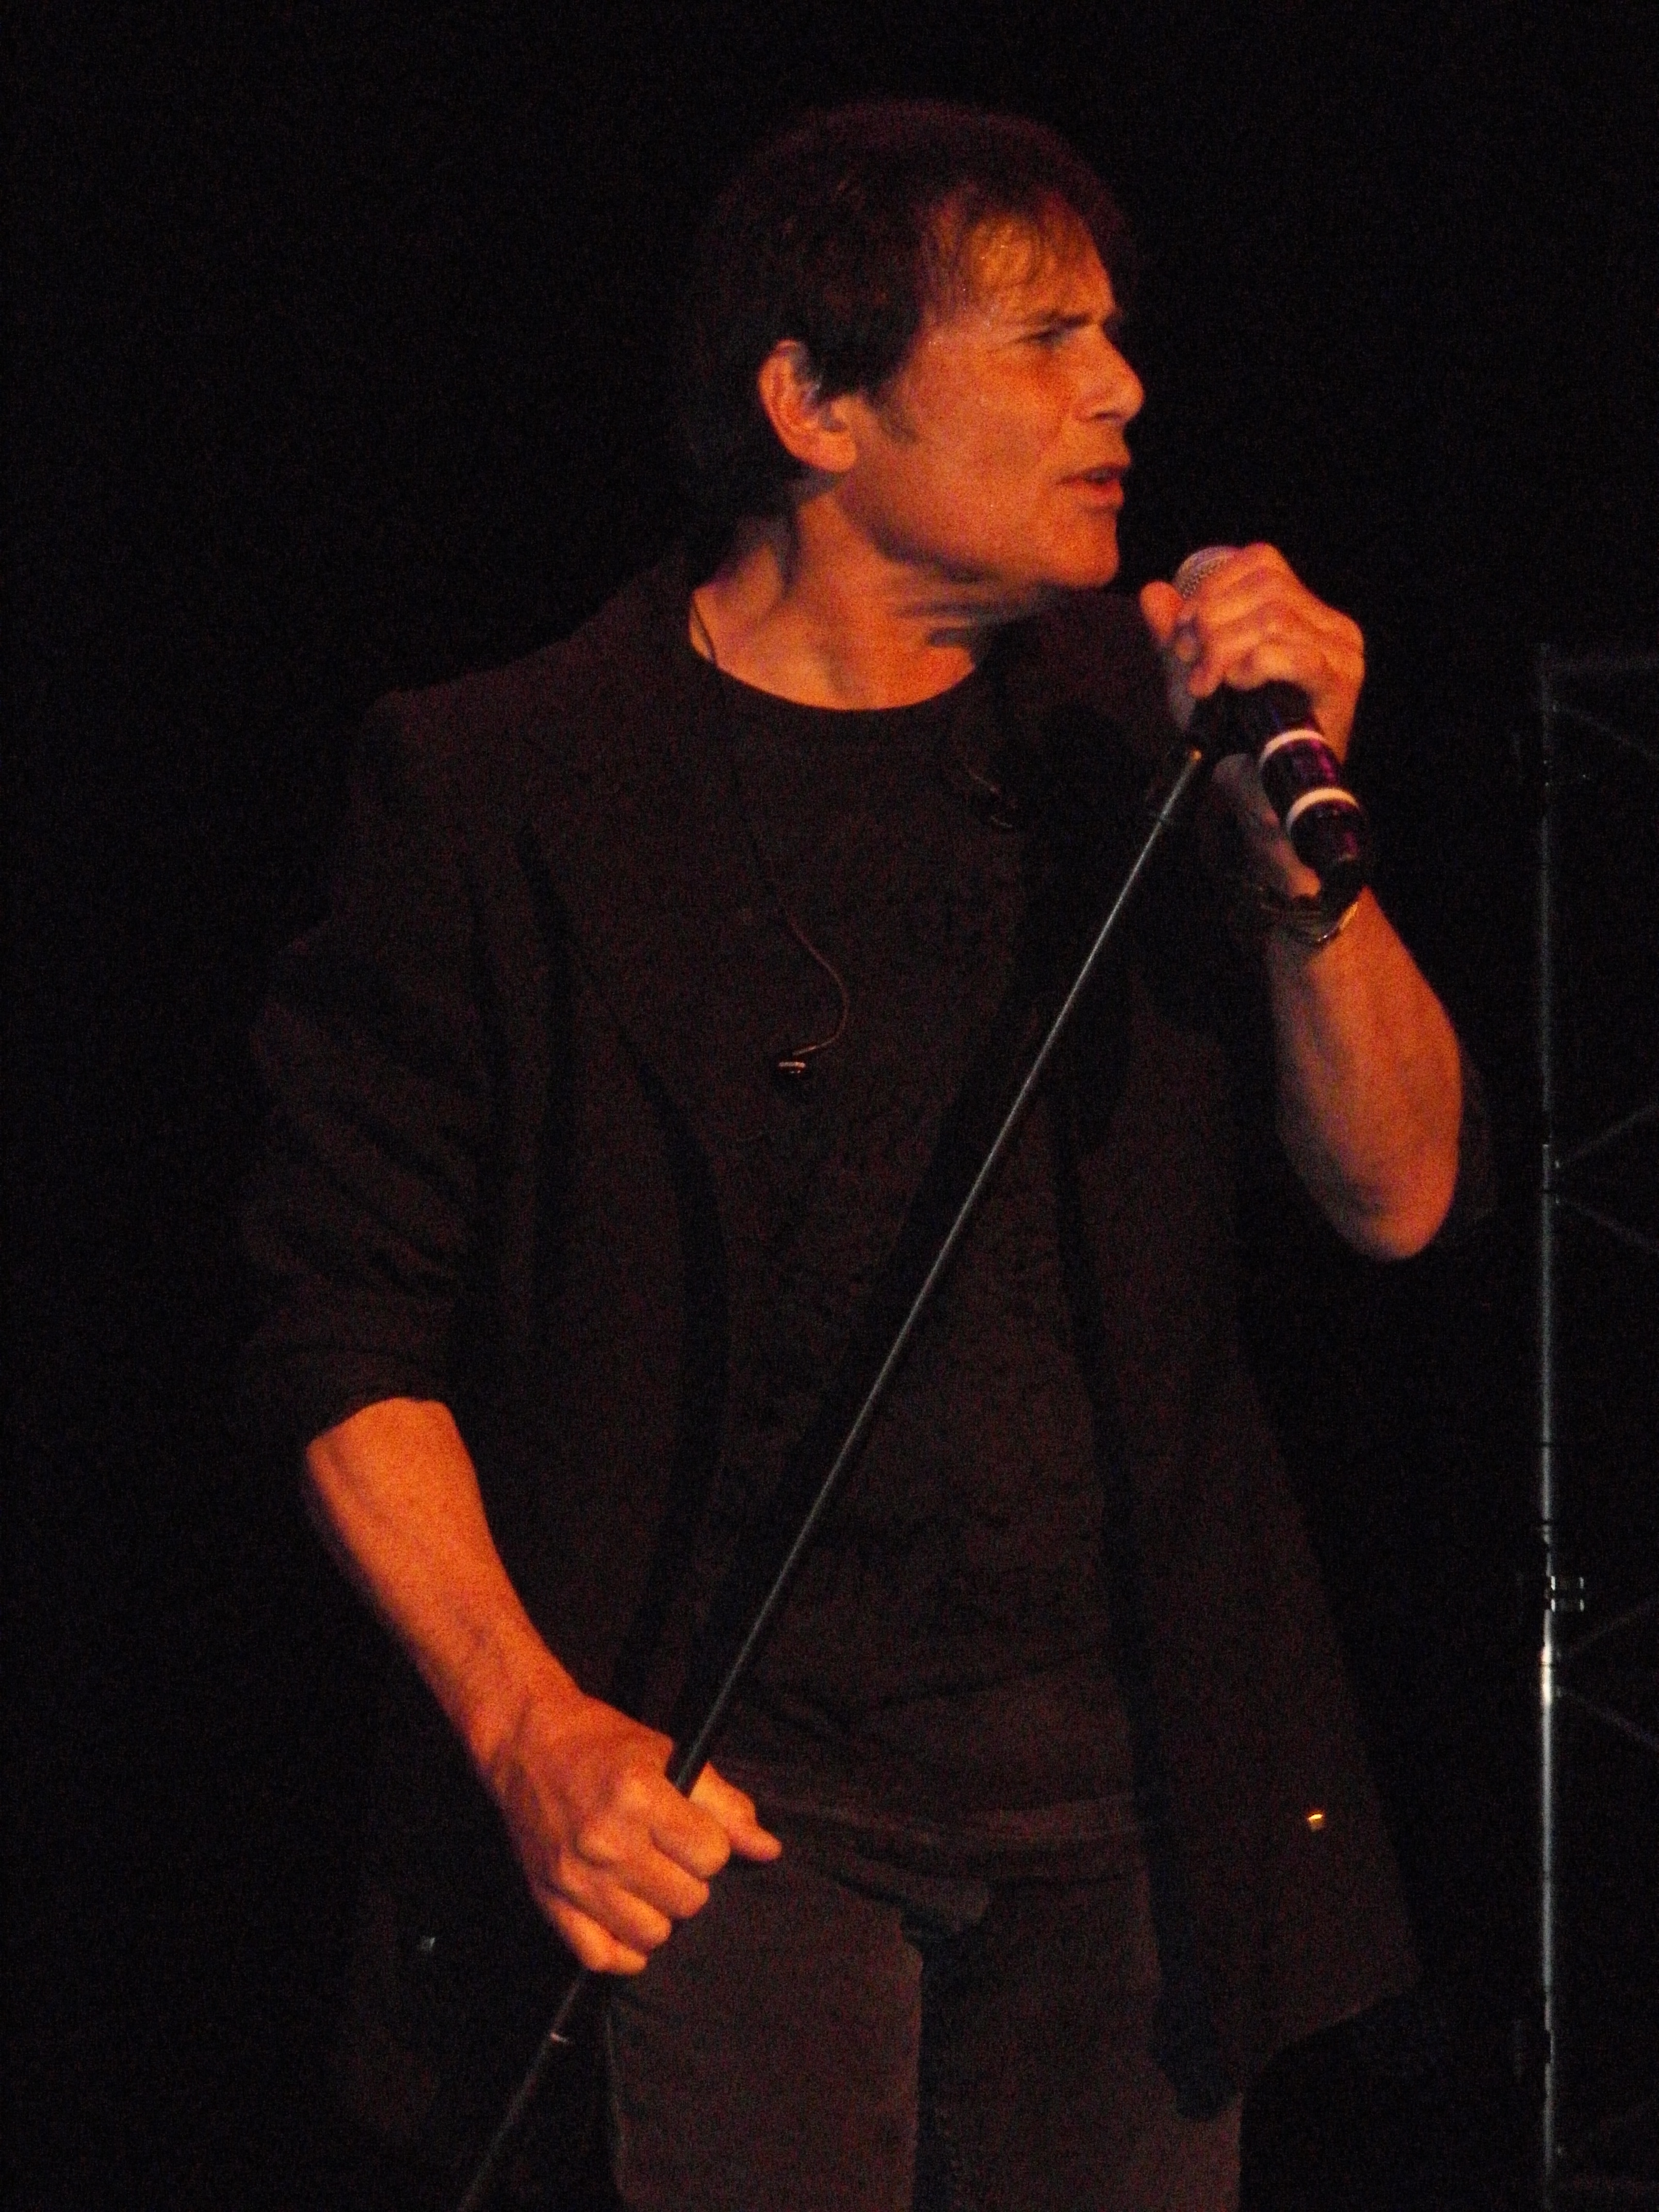 Jimi Jamison performs with Survivor photo by Jon Preiss.